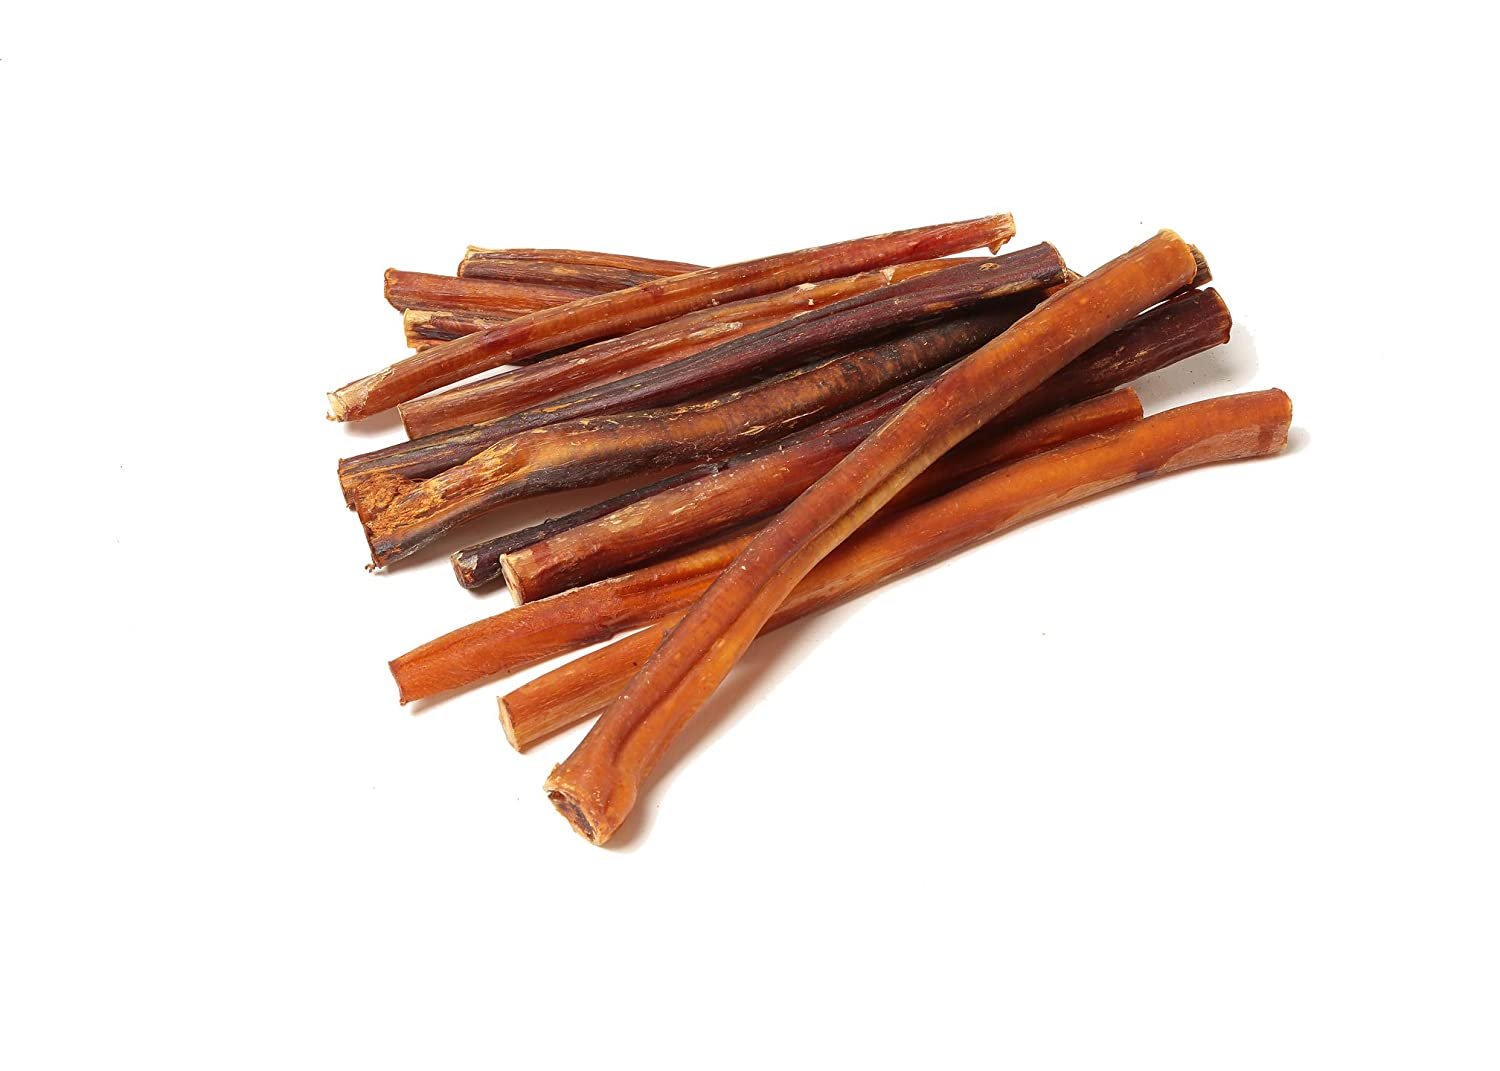 12 Pack 8 Inch-Thin Bully Sticks 12 Pack Truly Ugly with a Hint of Hickory by Natural Raw Chef